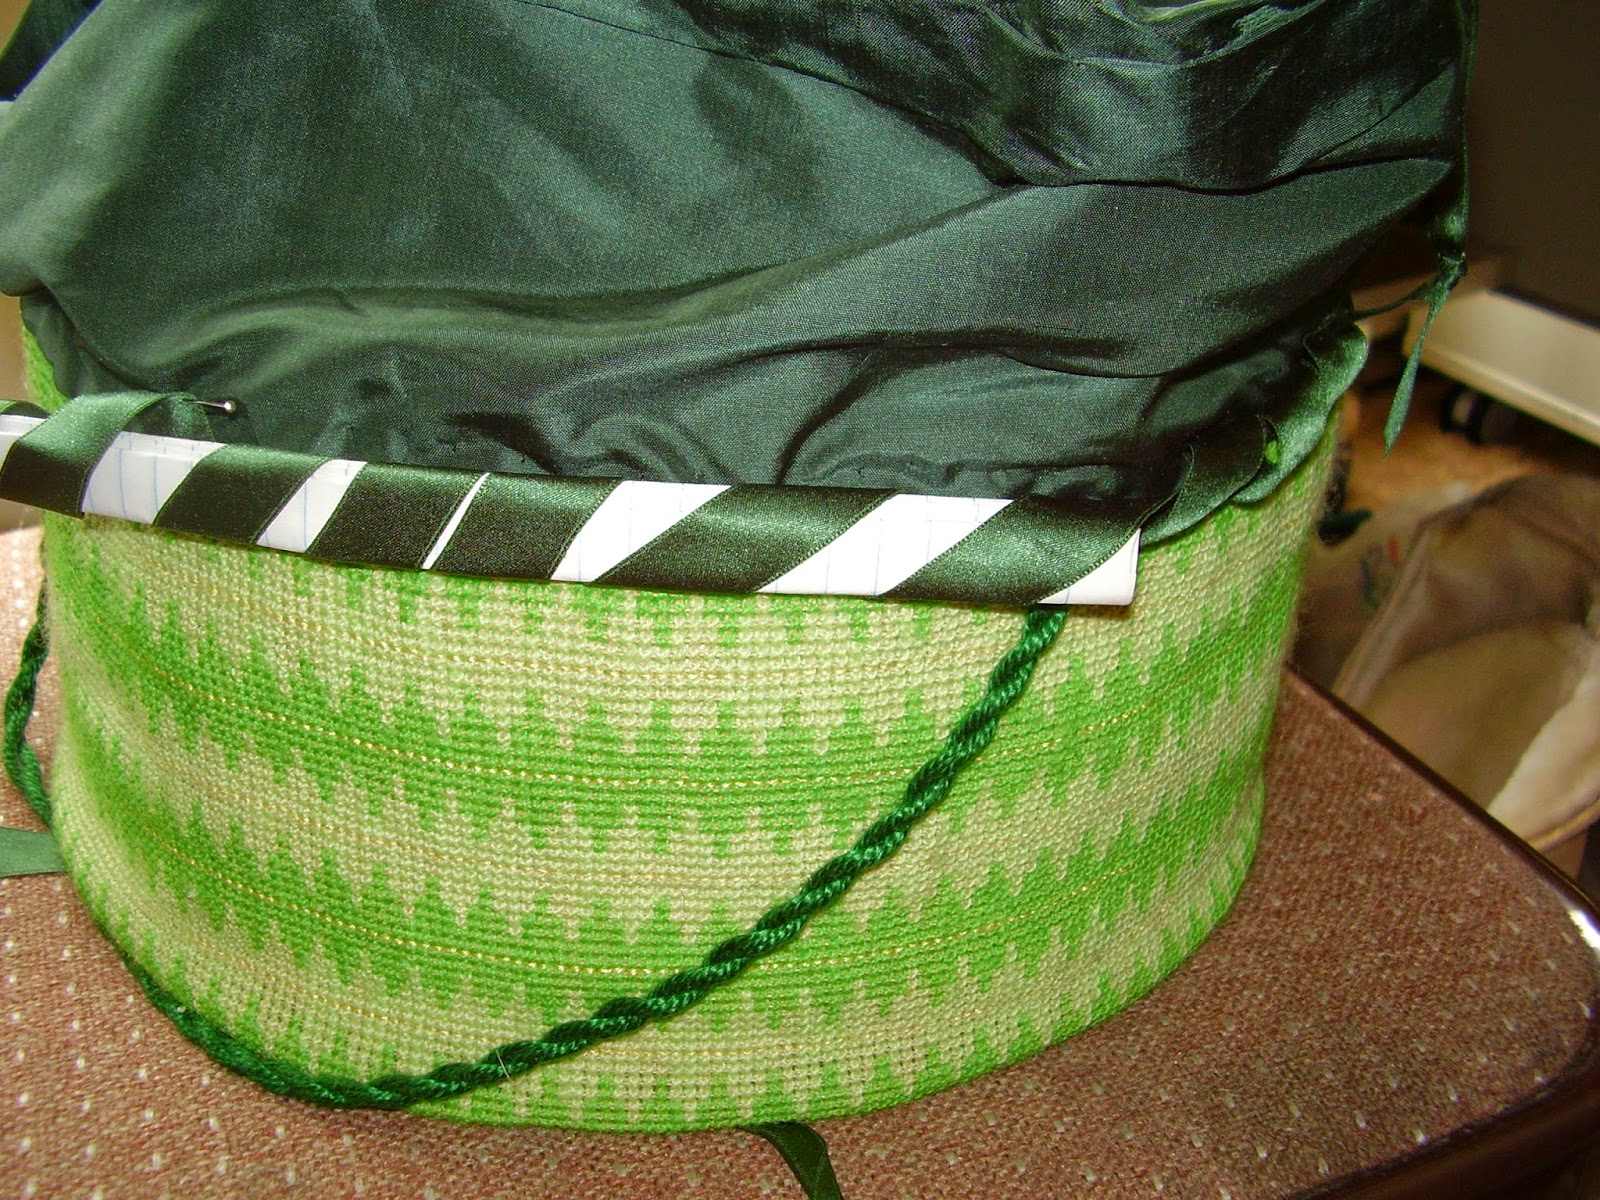 Silk ribbon rouleau on side join of work basket.